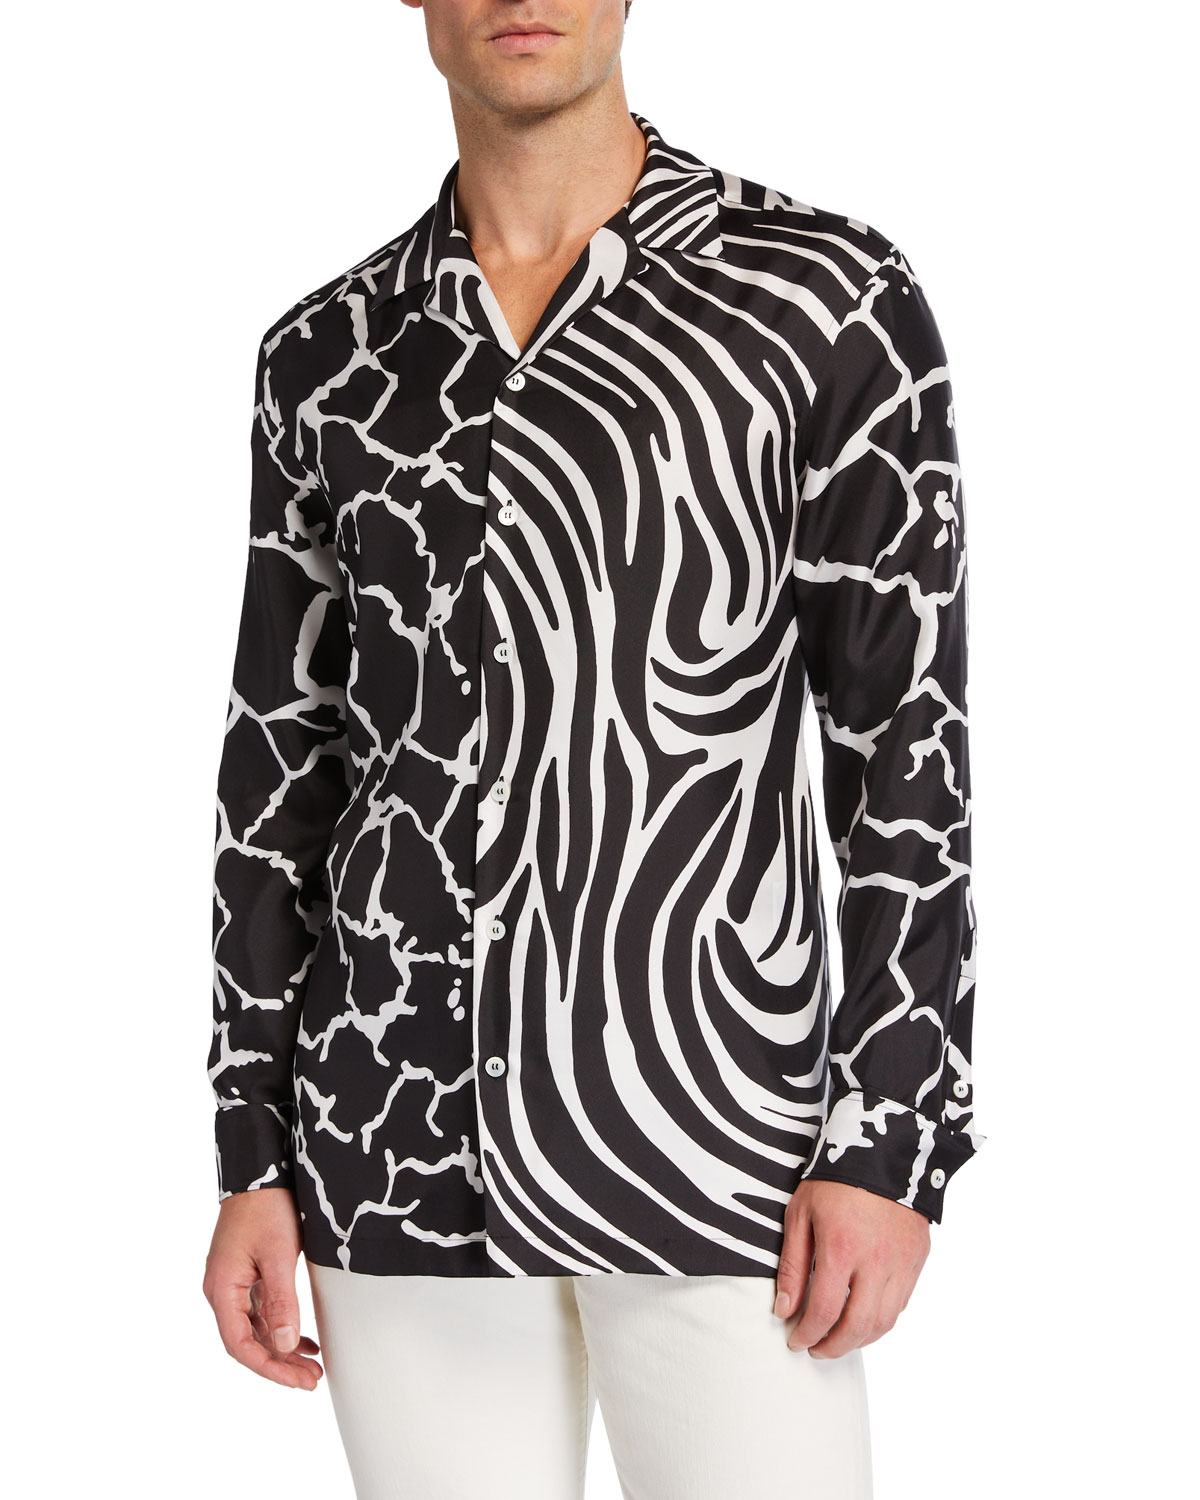 ef21151c Men's Zebra/Giraffe Printed Long-Sleeve Silk Shirt